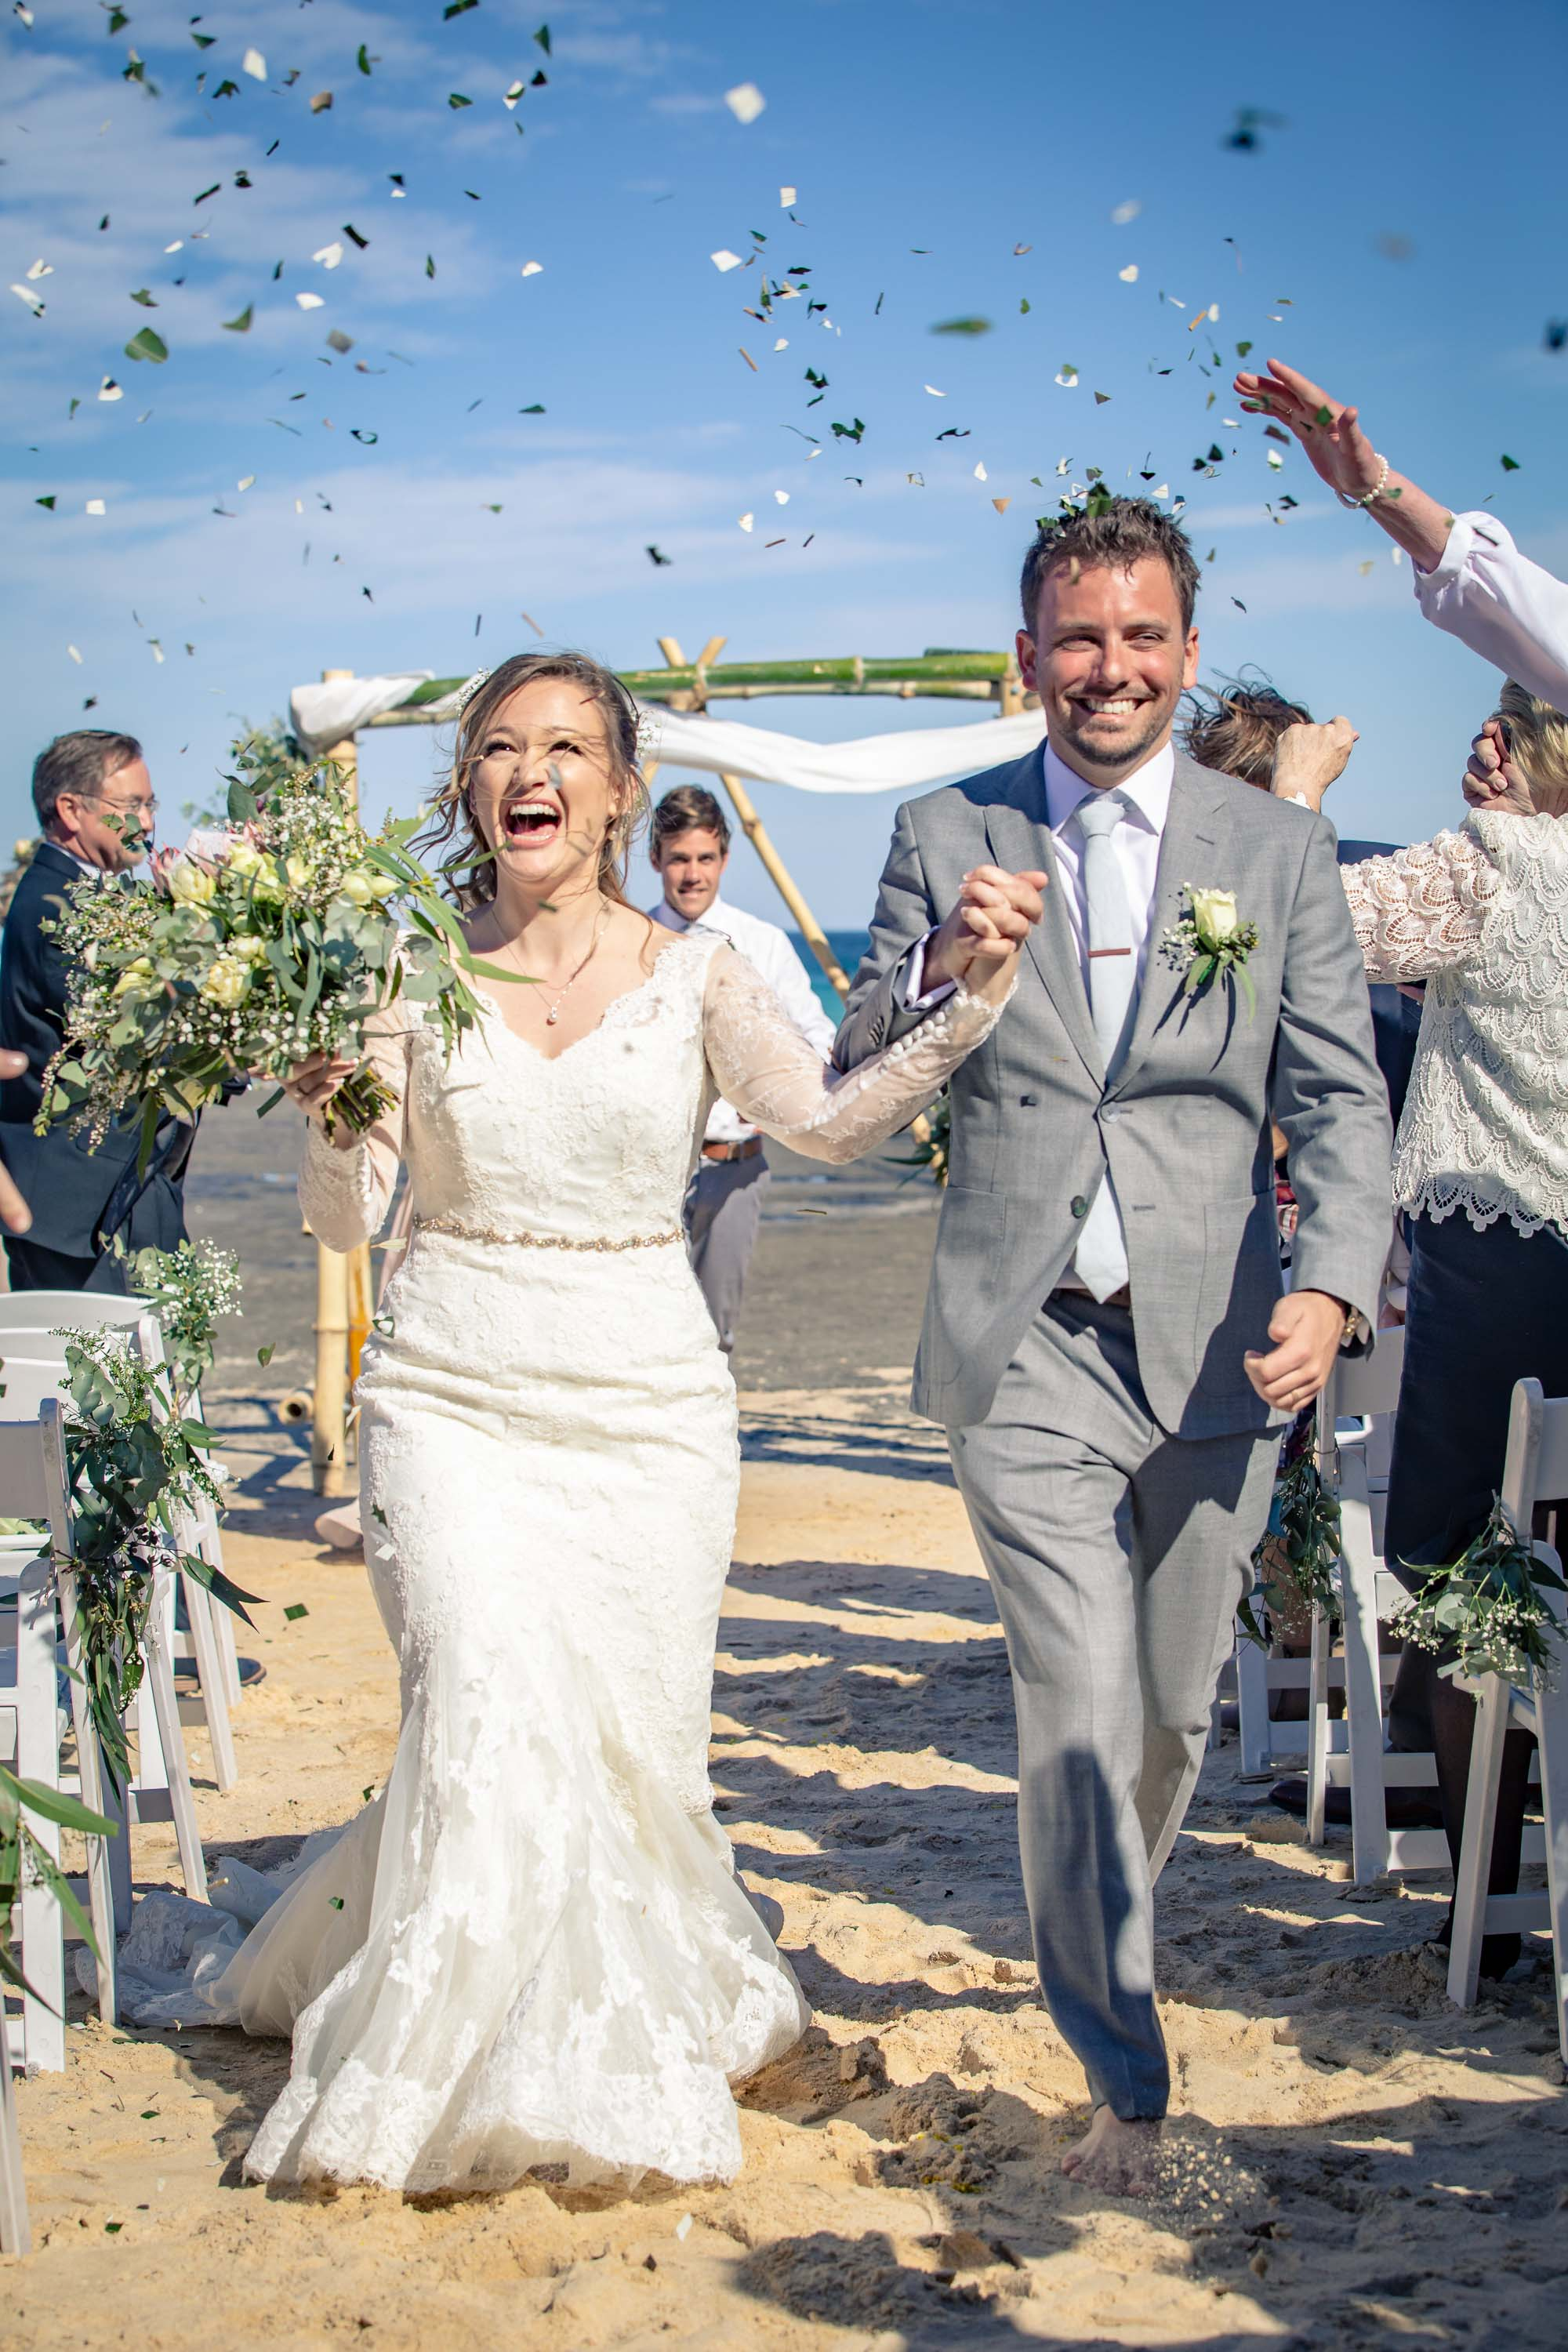 Ben and Leslie Reid Wedding August 2018